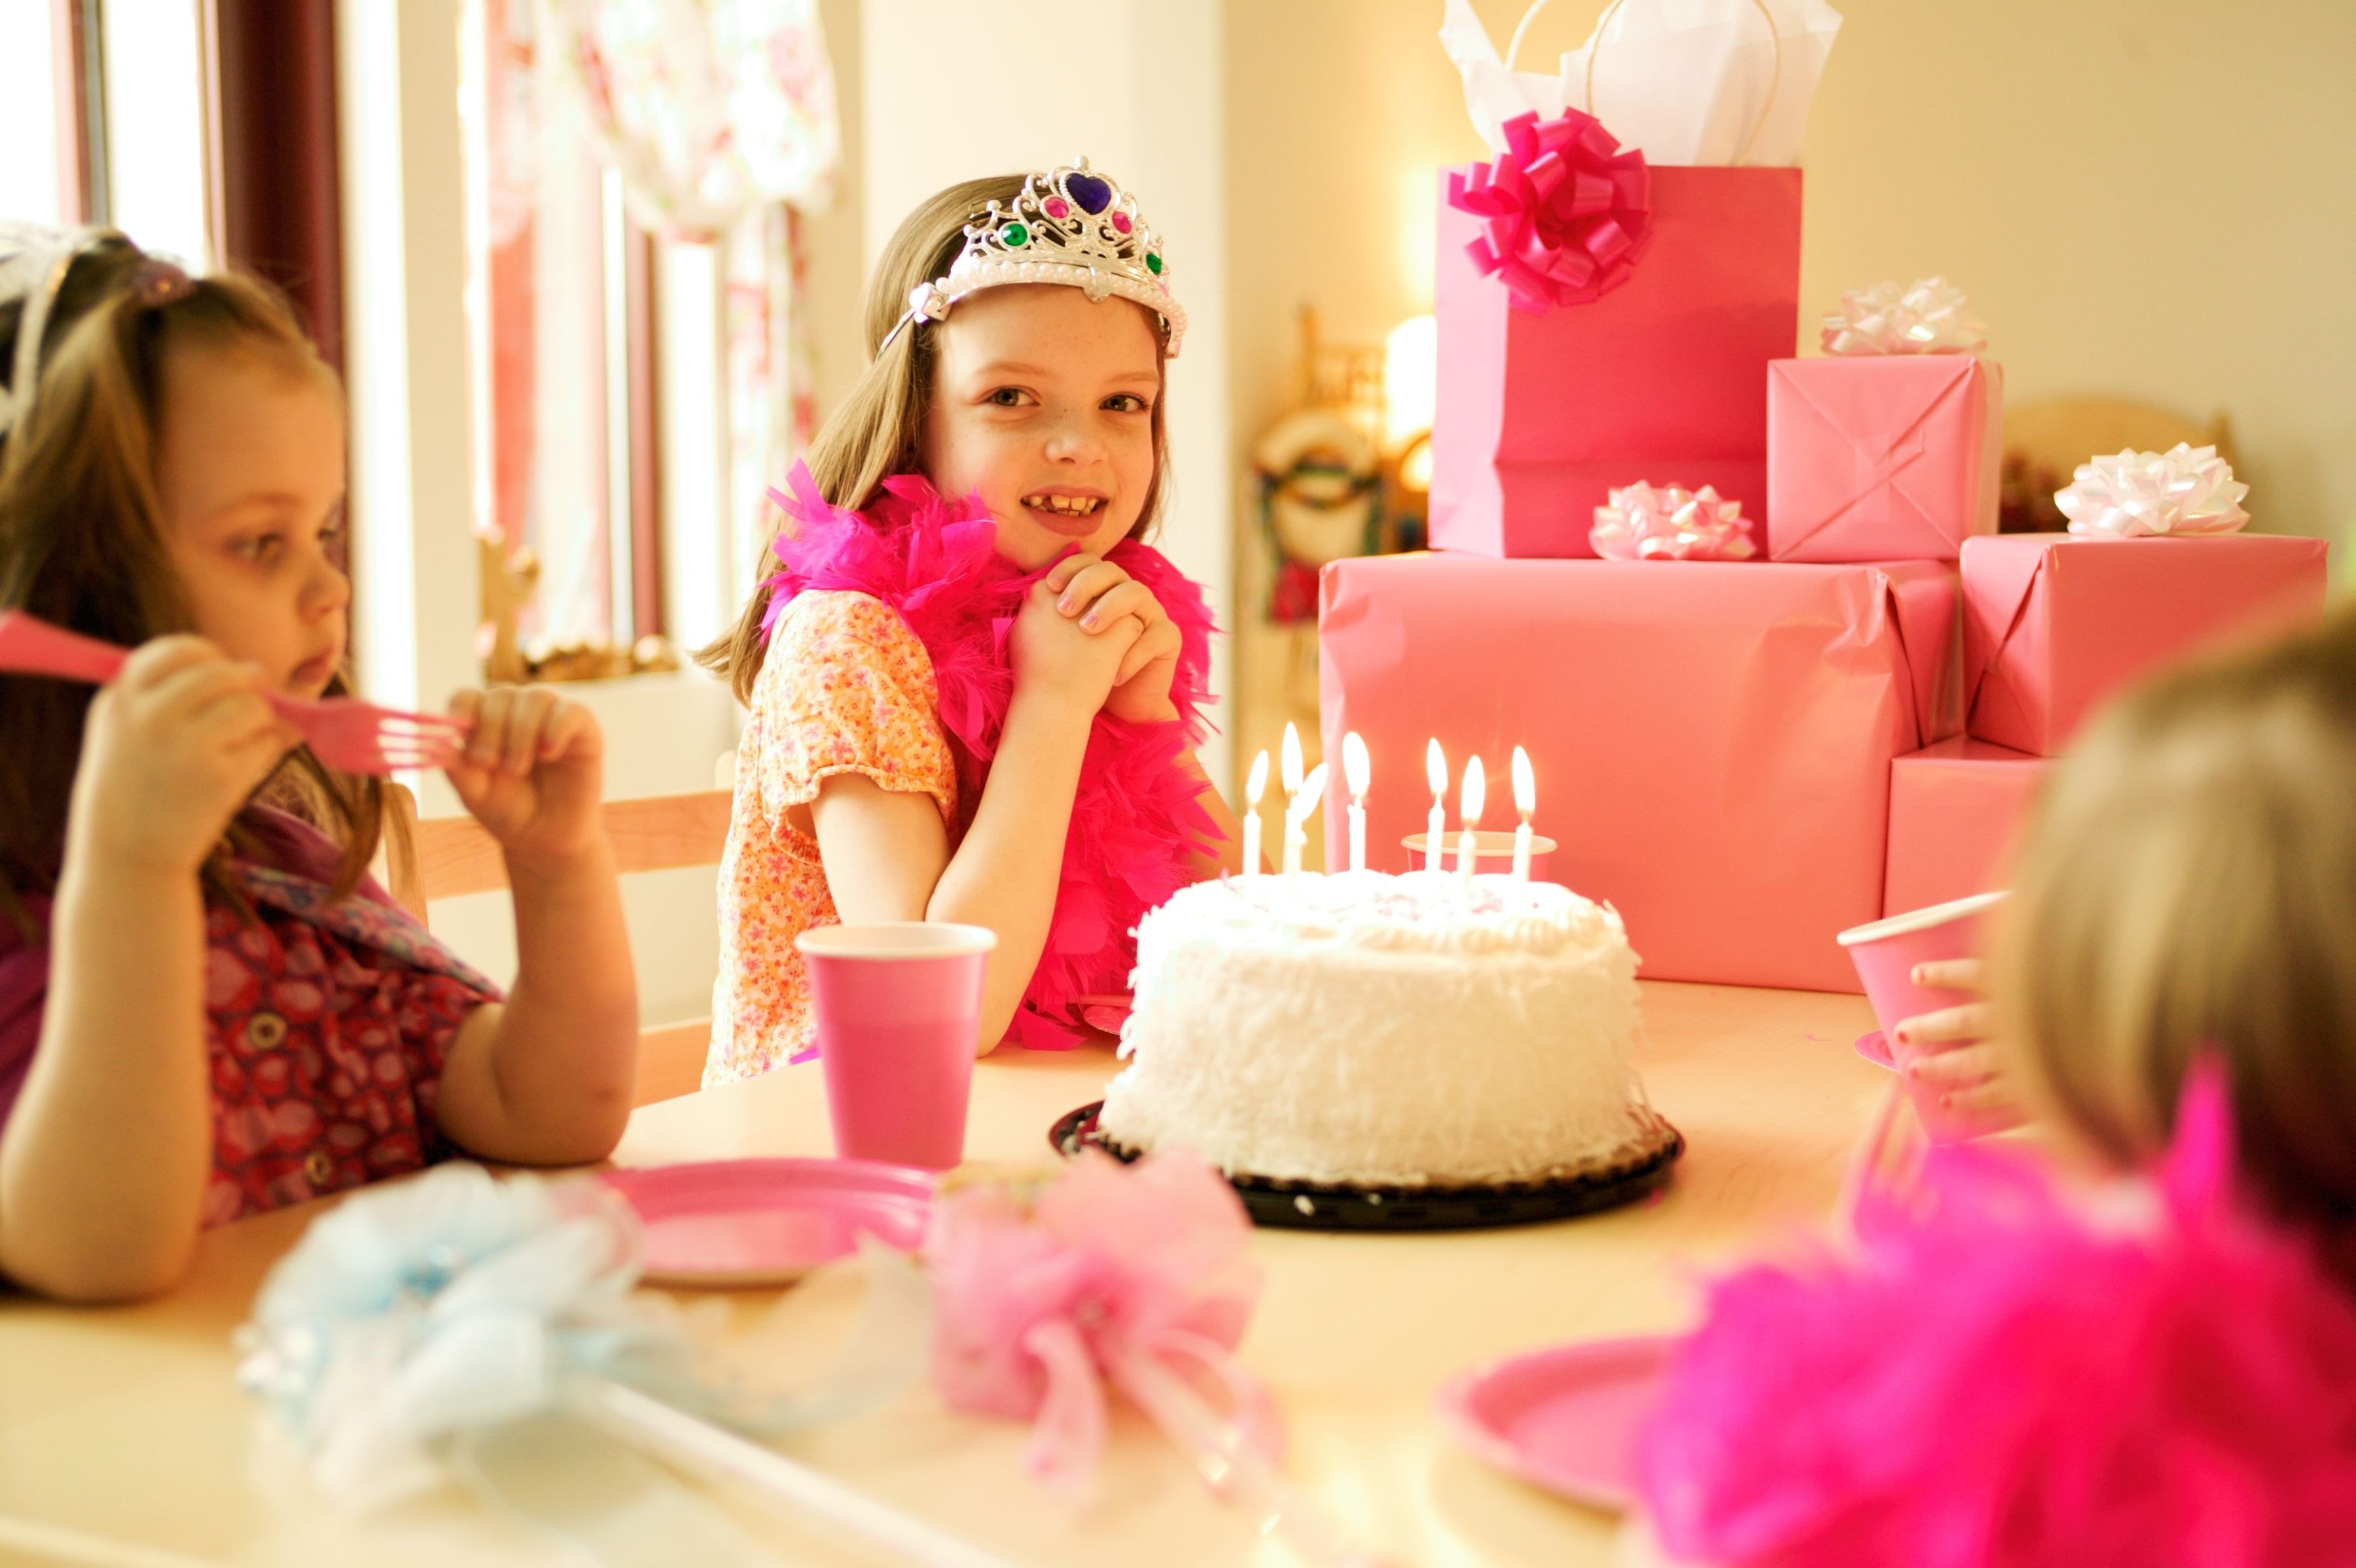 Birthday Party Ideas For 7 Year Old Girls With Pictures